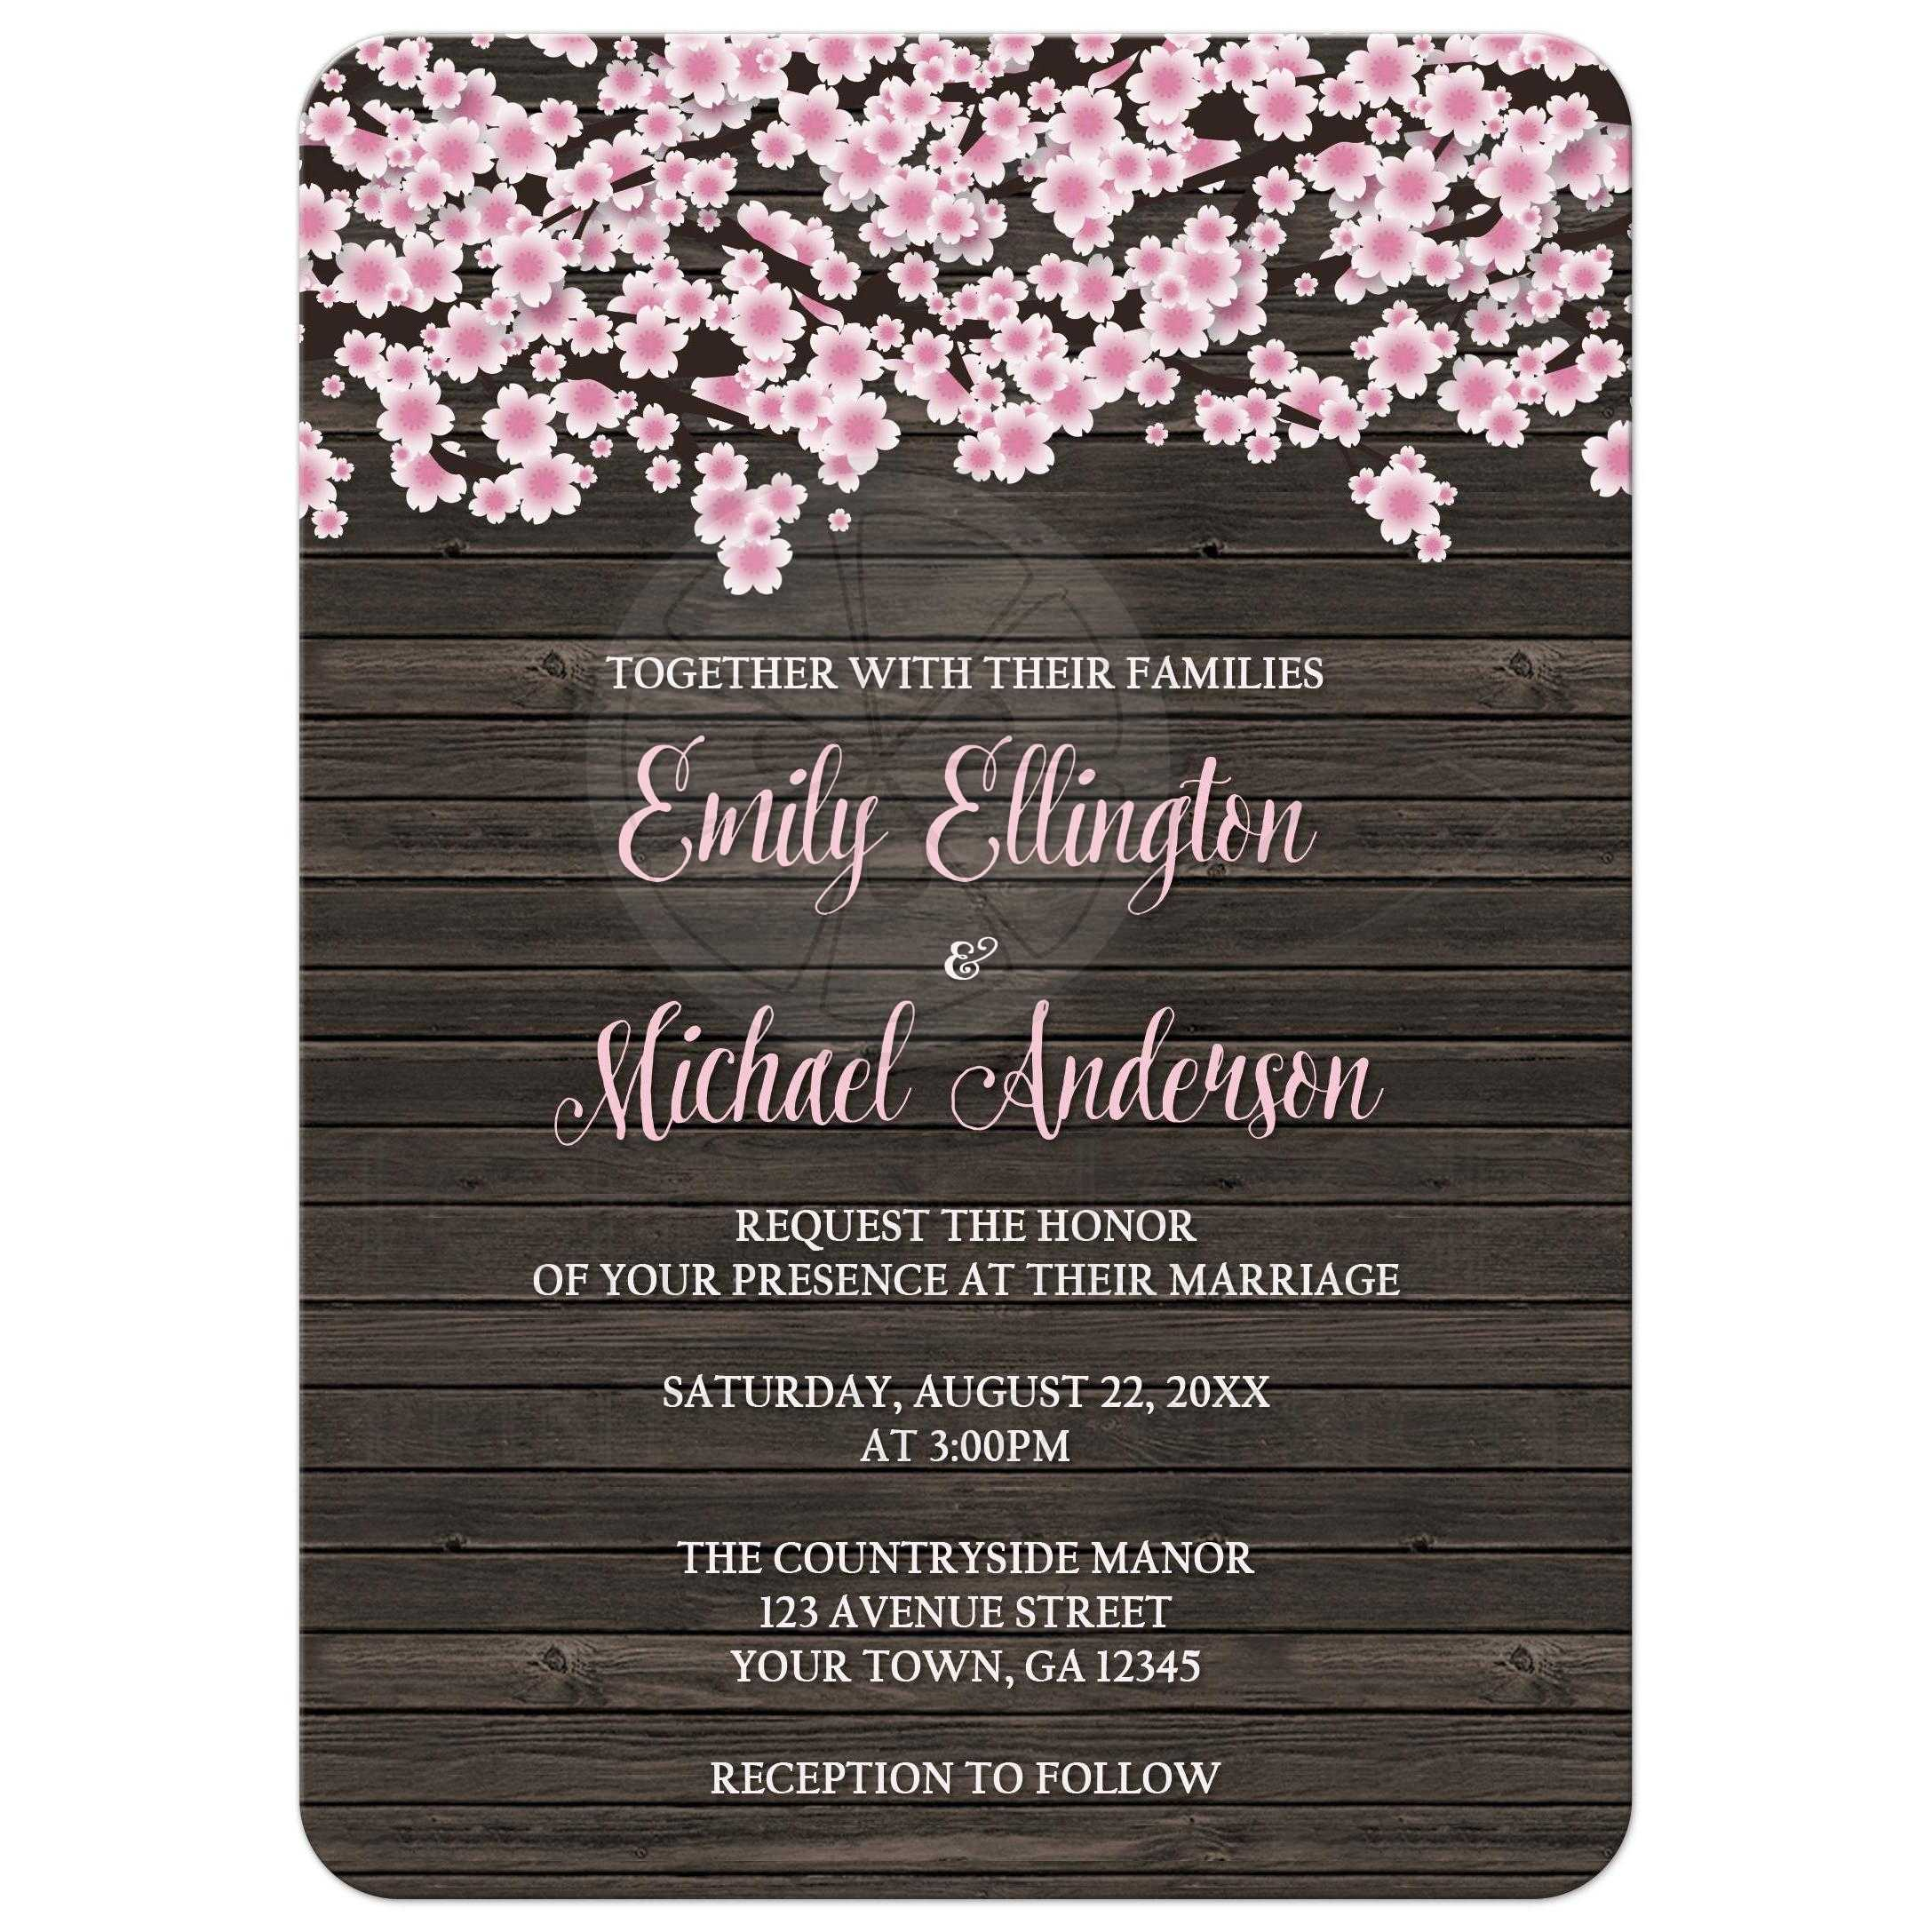 Invitations - Cherry Blossom Rustic Wood